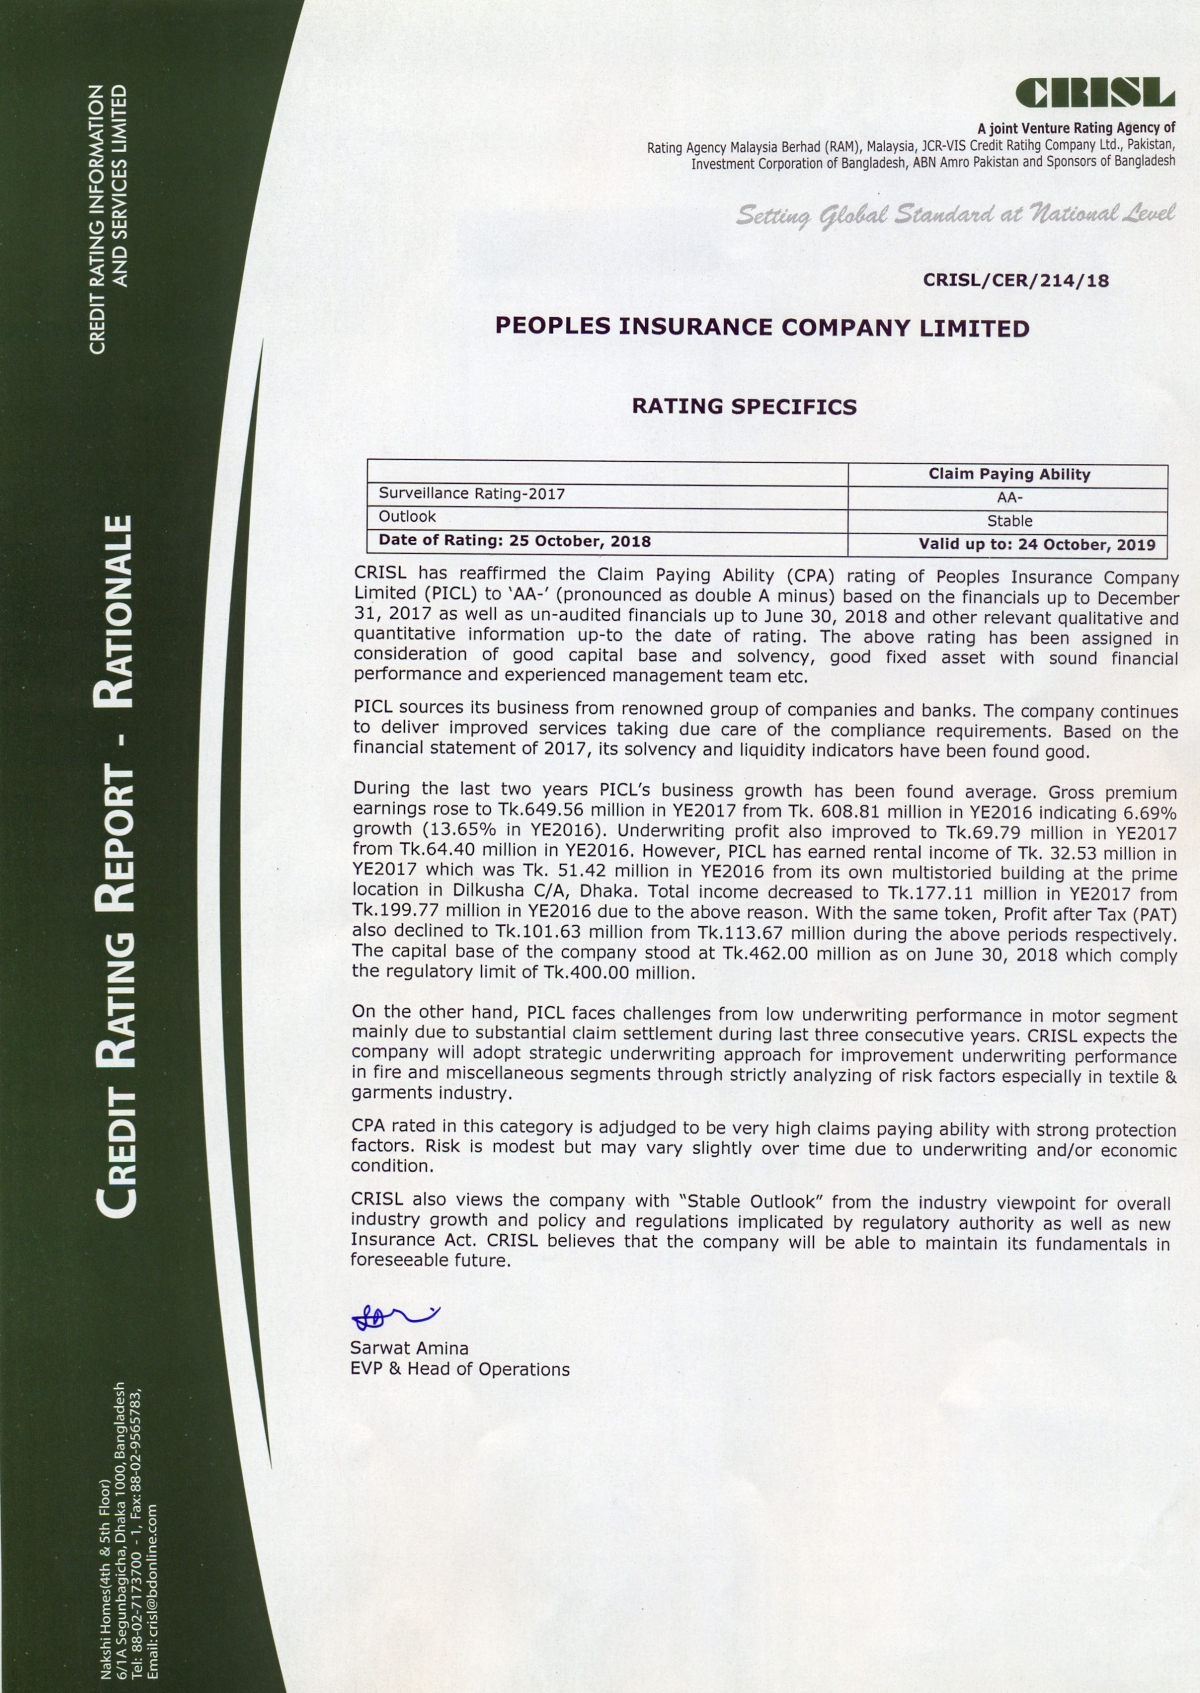 Credit Rating Certificate 2019 of Peoples Insurance Company Limited